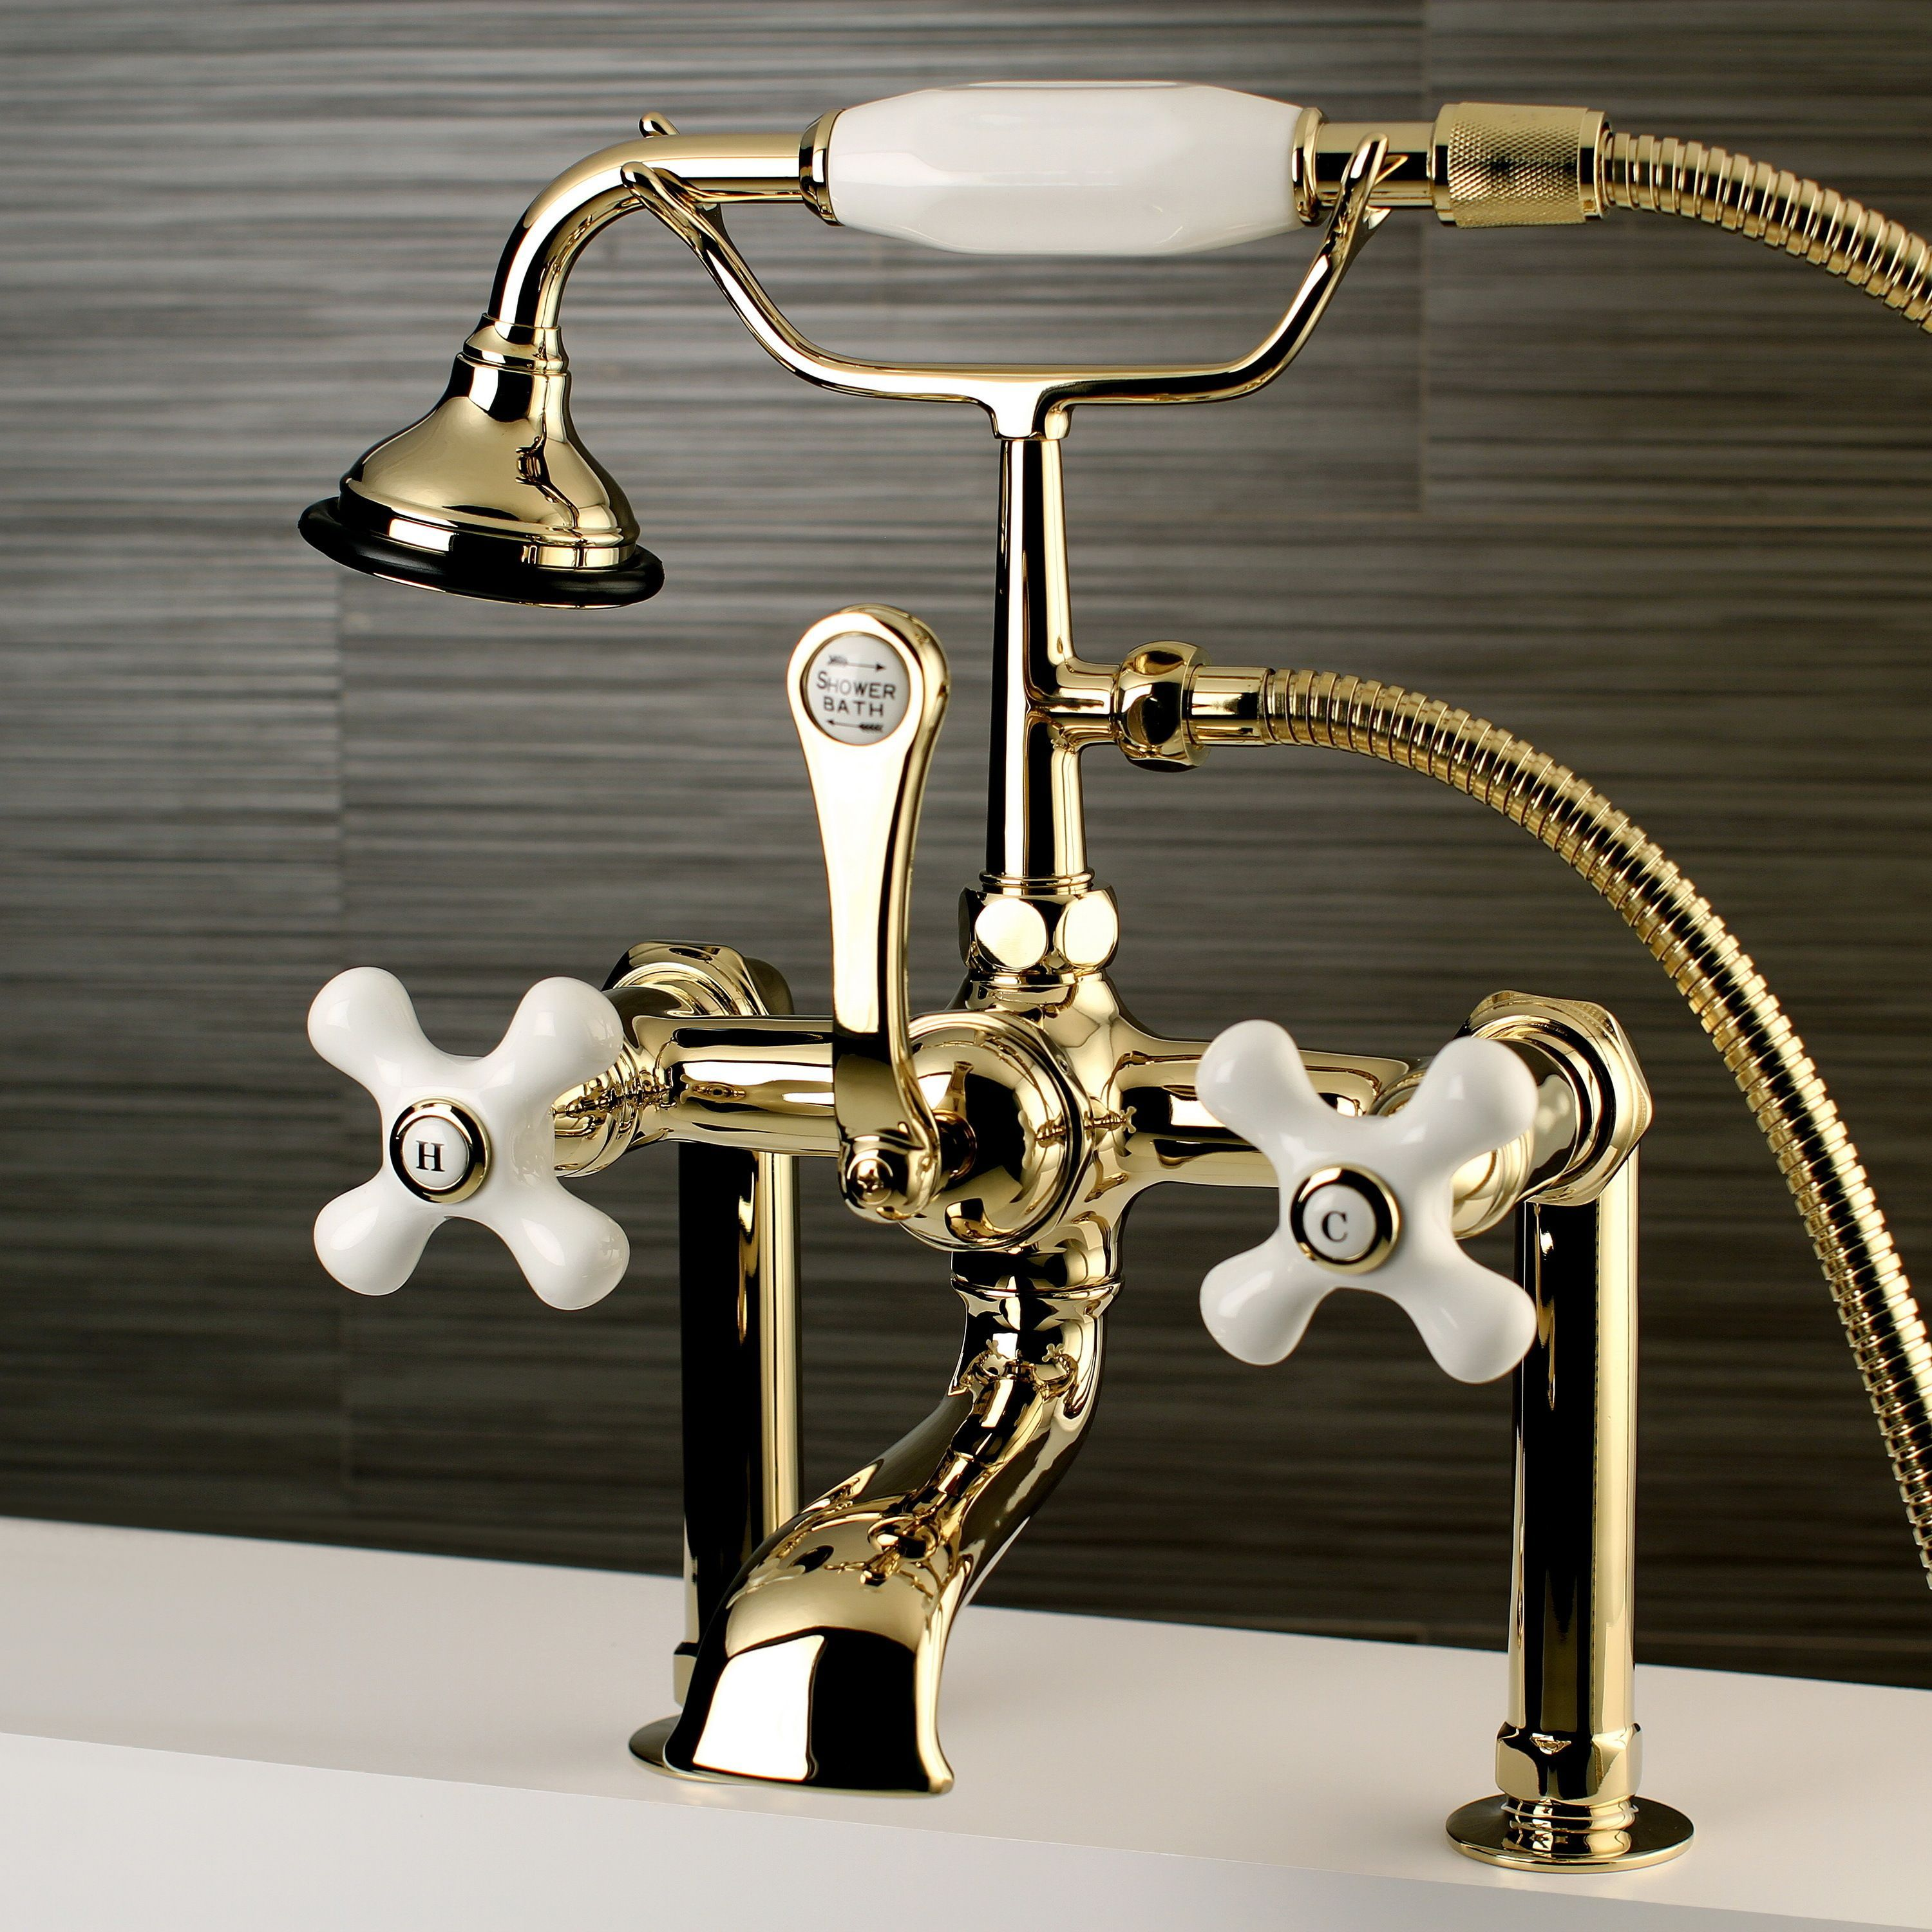 Bathroom faucet deck mounted brass bath spout modern bathroom faucets - Deck Mount Polished Brass Clawfoot Tub Faucet With Hand Shower By Kingston Brass